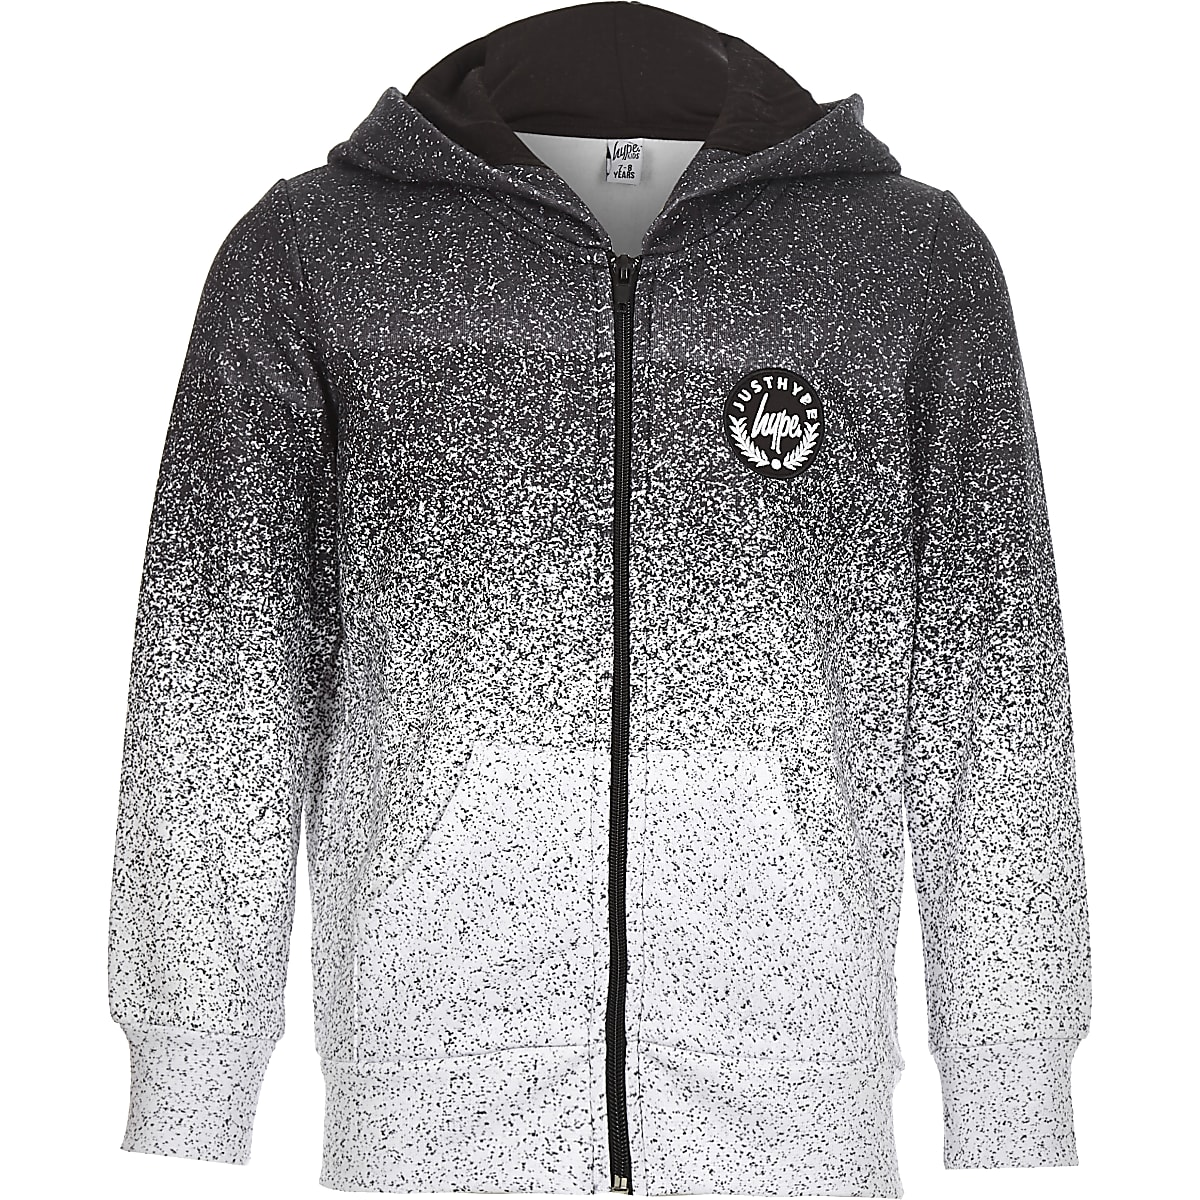 0a3ed8658366 Boys Hype grey speckled zip front hoodie - Hoodies   Sweatshirts - boys